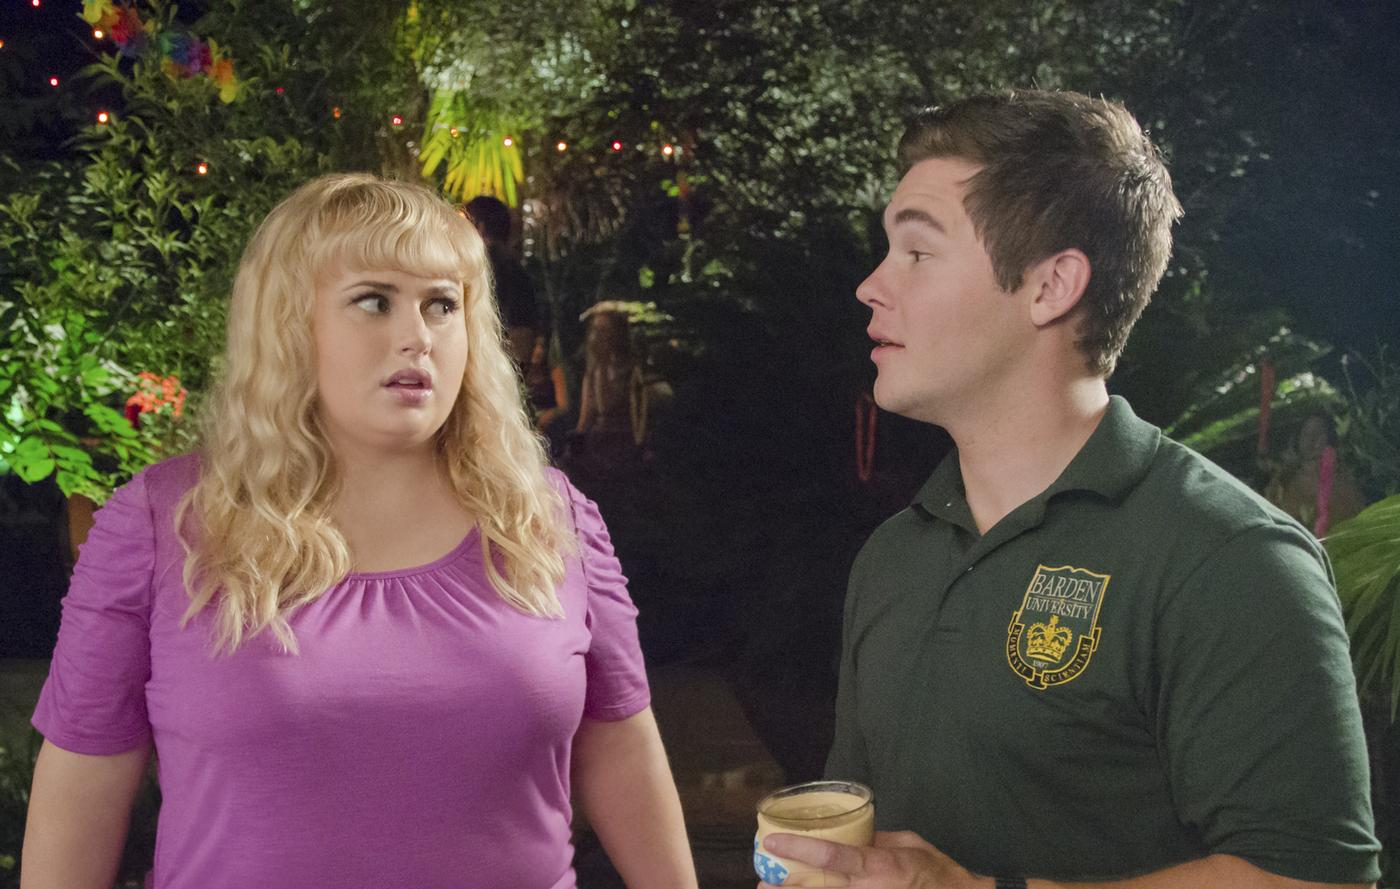 6 reasons Pitch Perfect 2 is aca-awesome